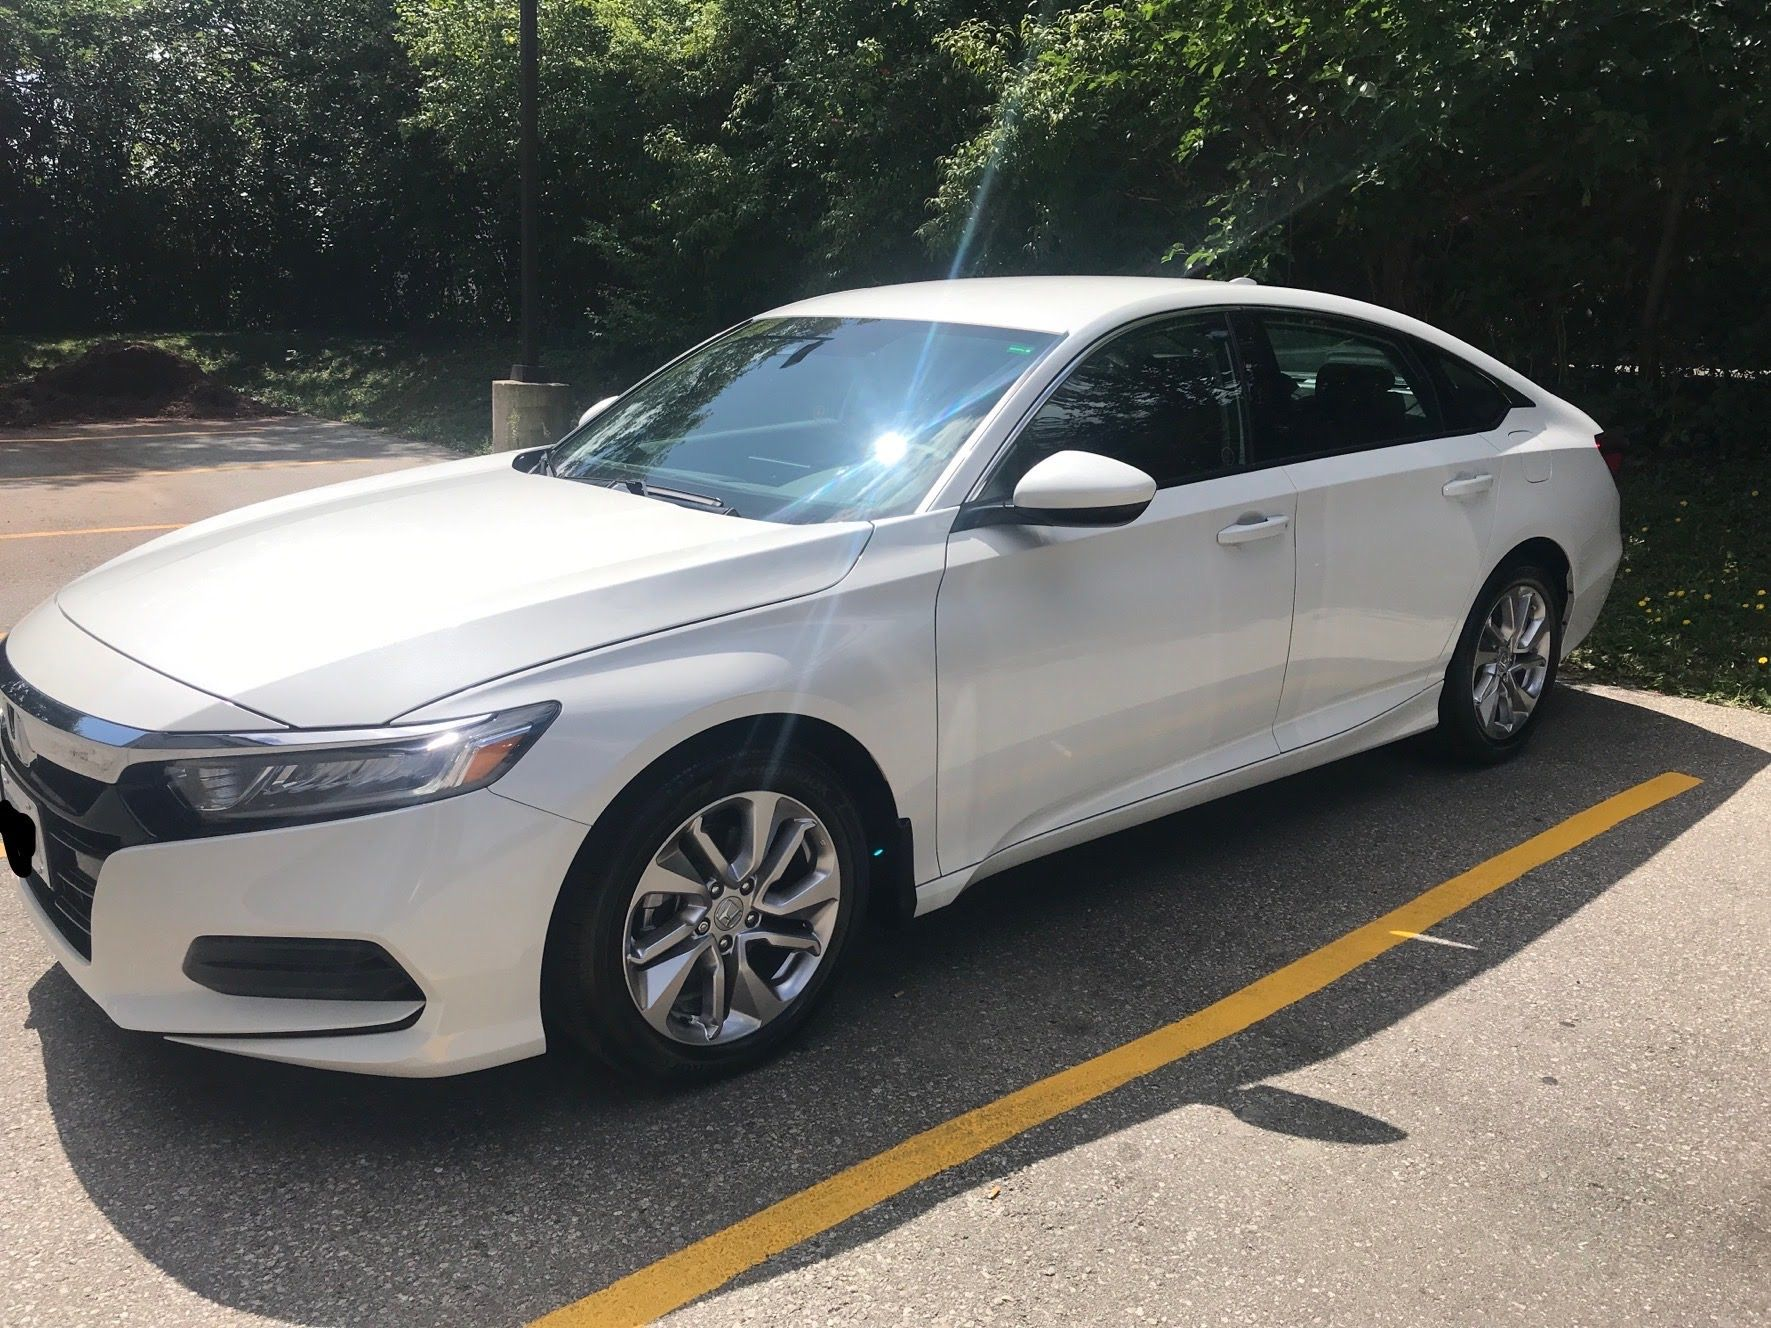 2019 Honda Accord null - INFOCAR - Toronto's Most Comprehensive New and Used Auto Trading Platform